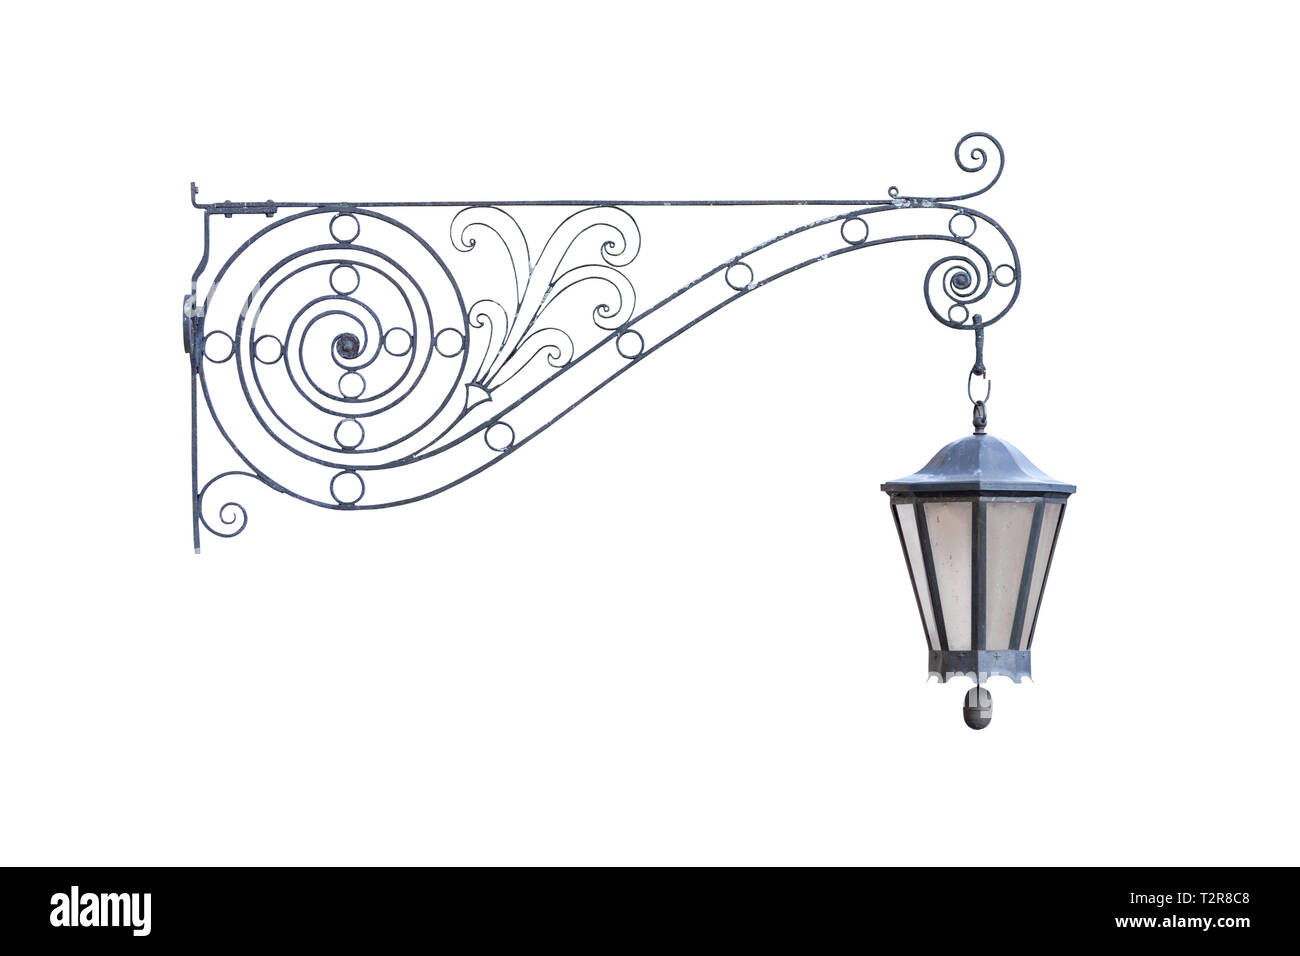 Old vintage decorative hanging street lamp isolated on white background, real picture, front view of one cut out object Stock Photo